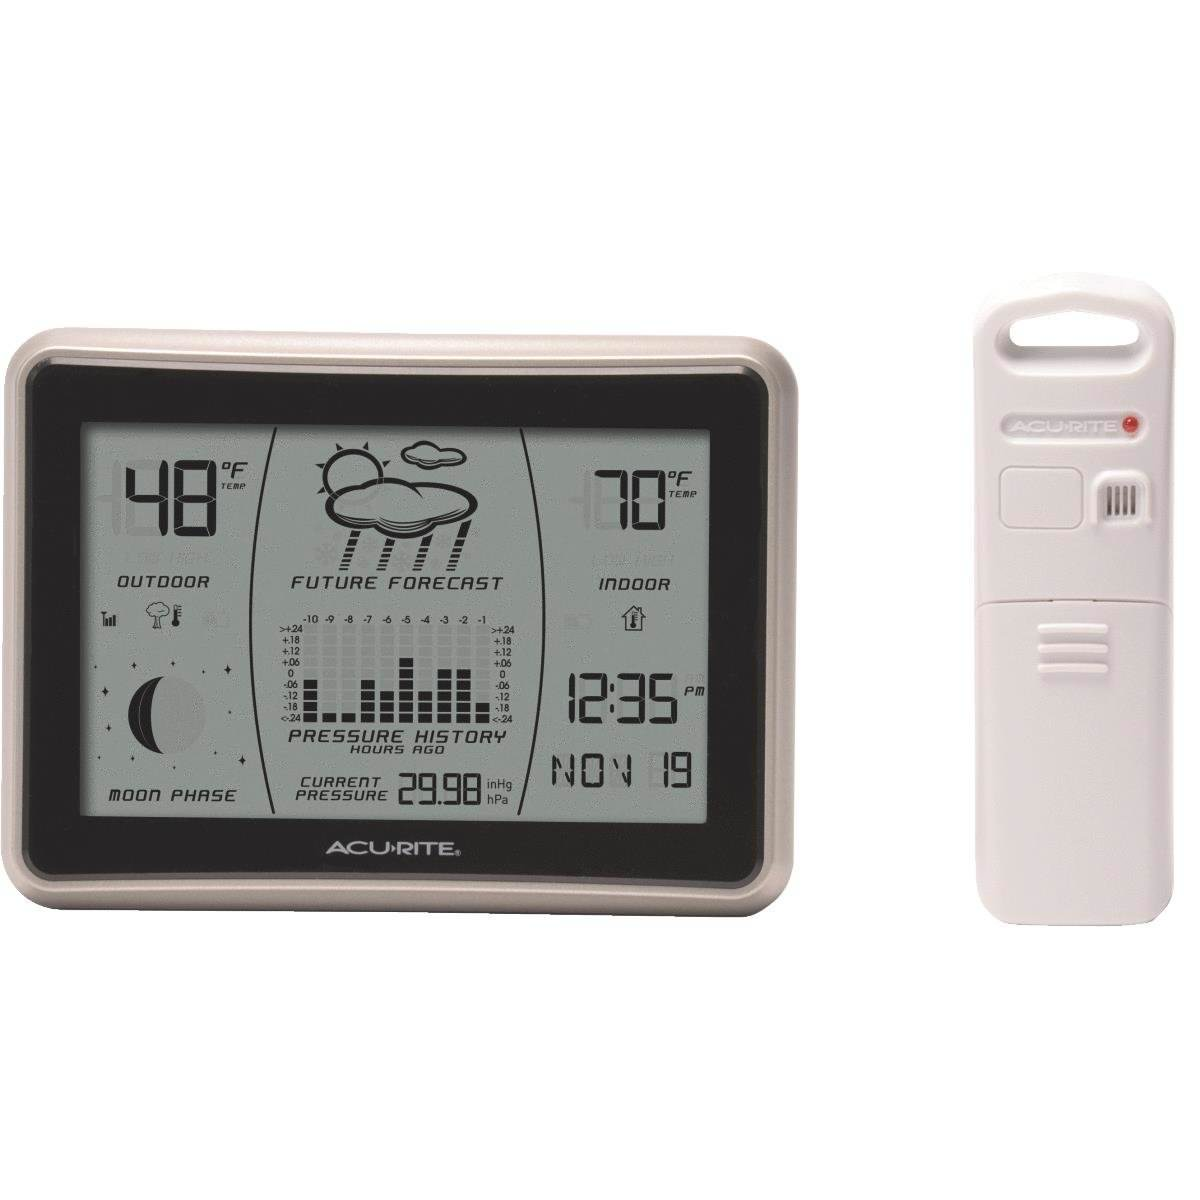 Acurite 00621 Wireless Weather Station with Forecast including Moon Phase by Chaney Instrument Co